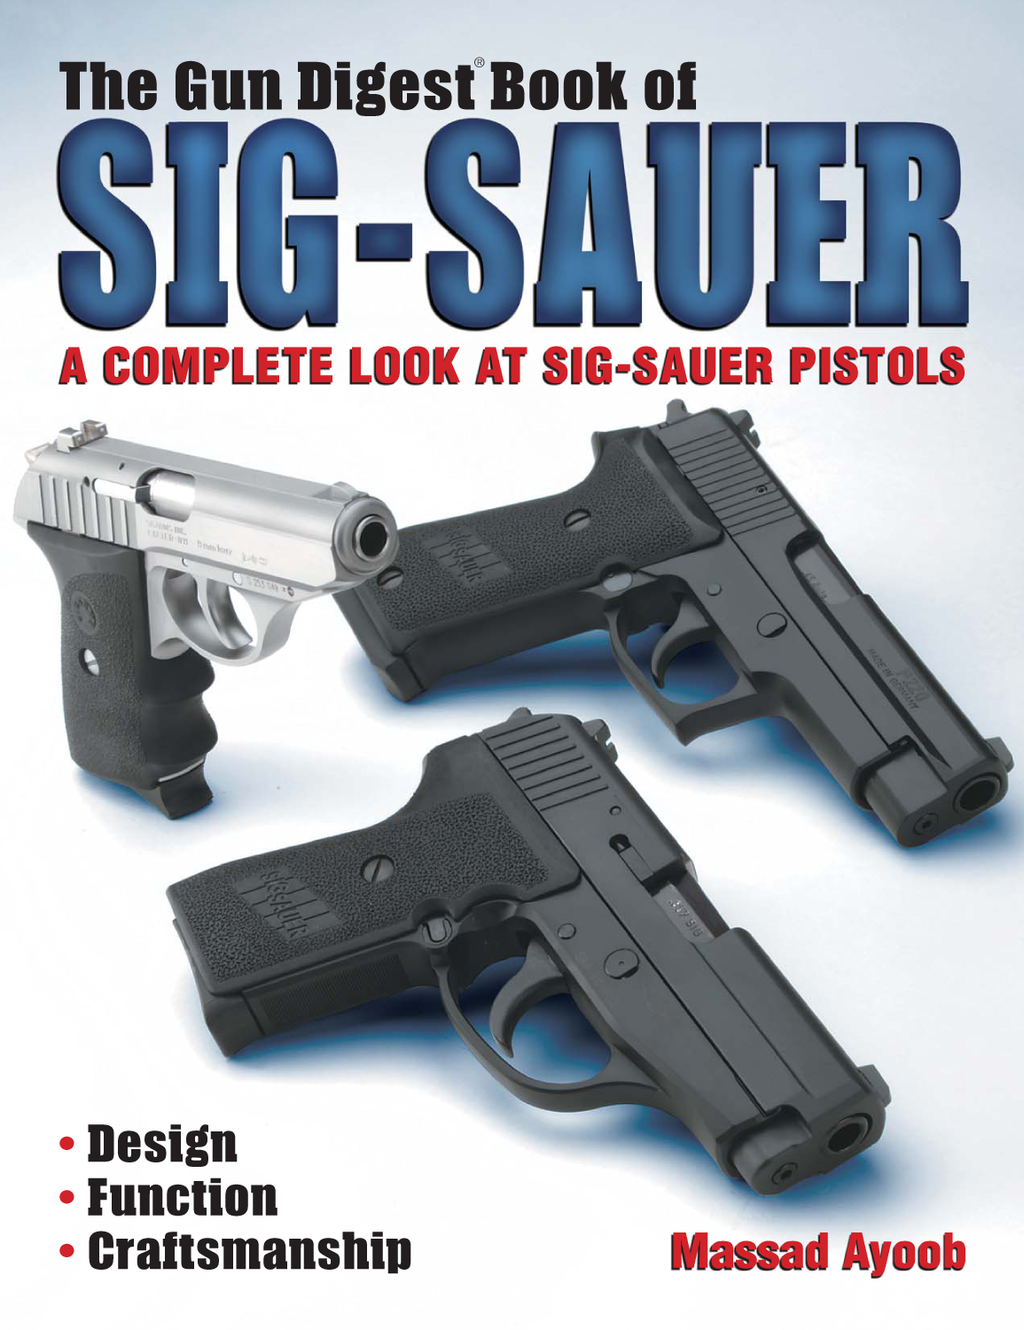 The Gun Digest Book of Sig-Sauer By: Massad Ayoob